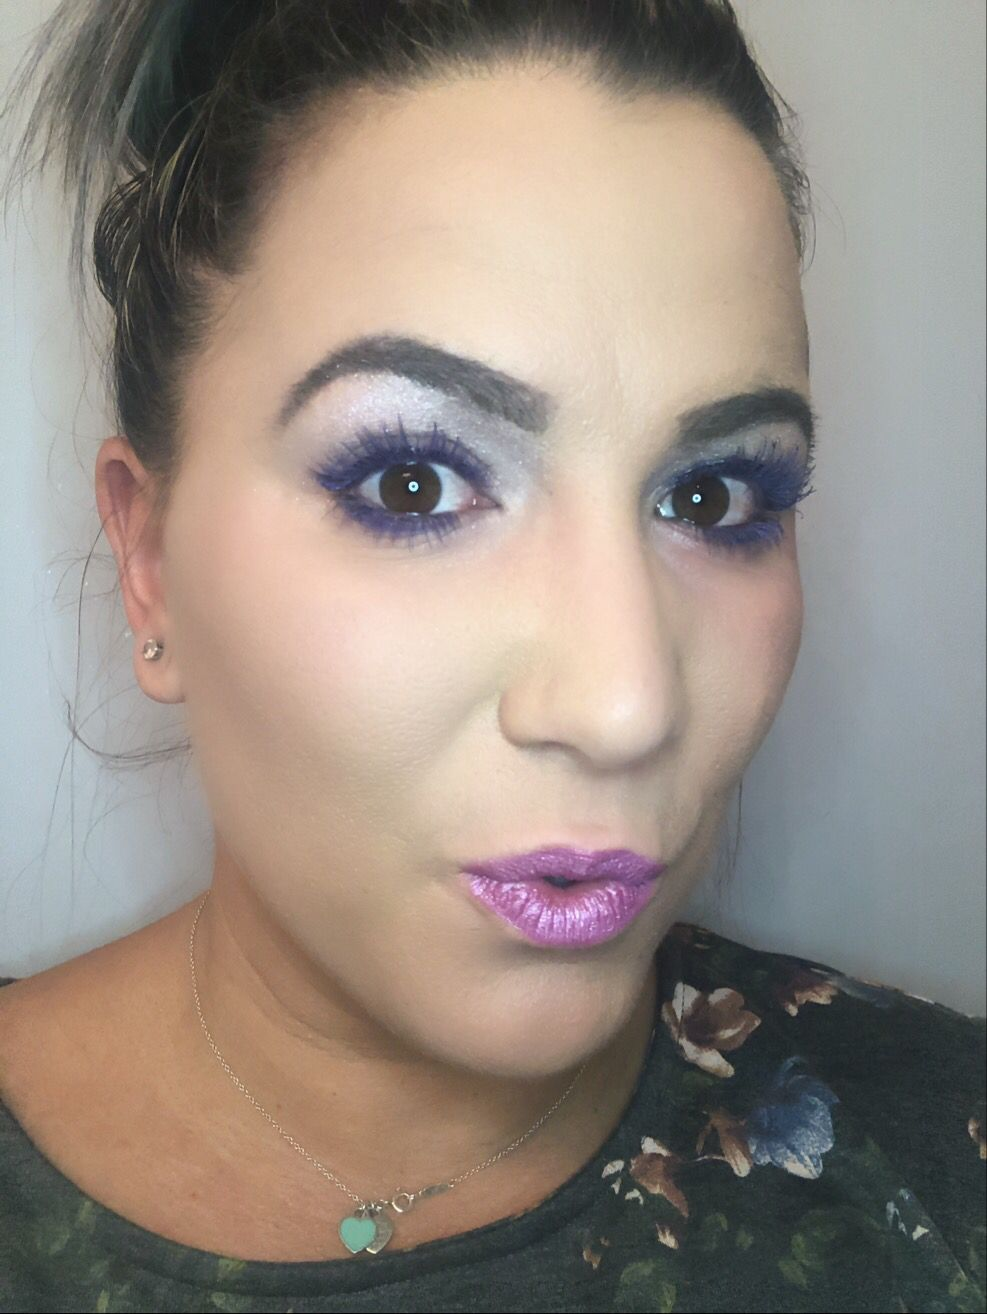 Younique Purple Epic Mascara November 2018 Exclusive (With